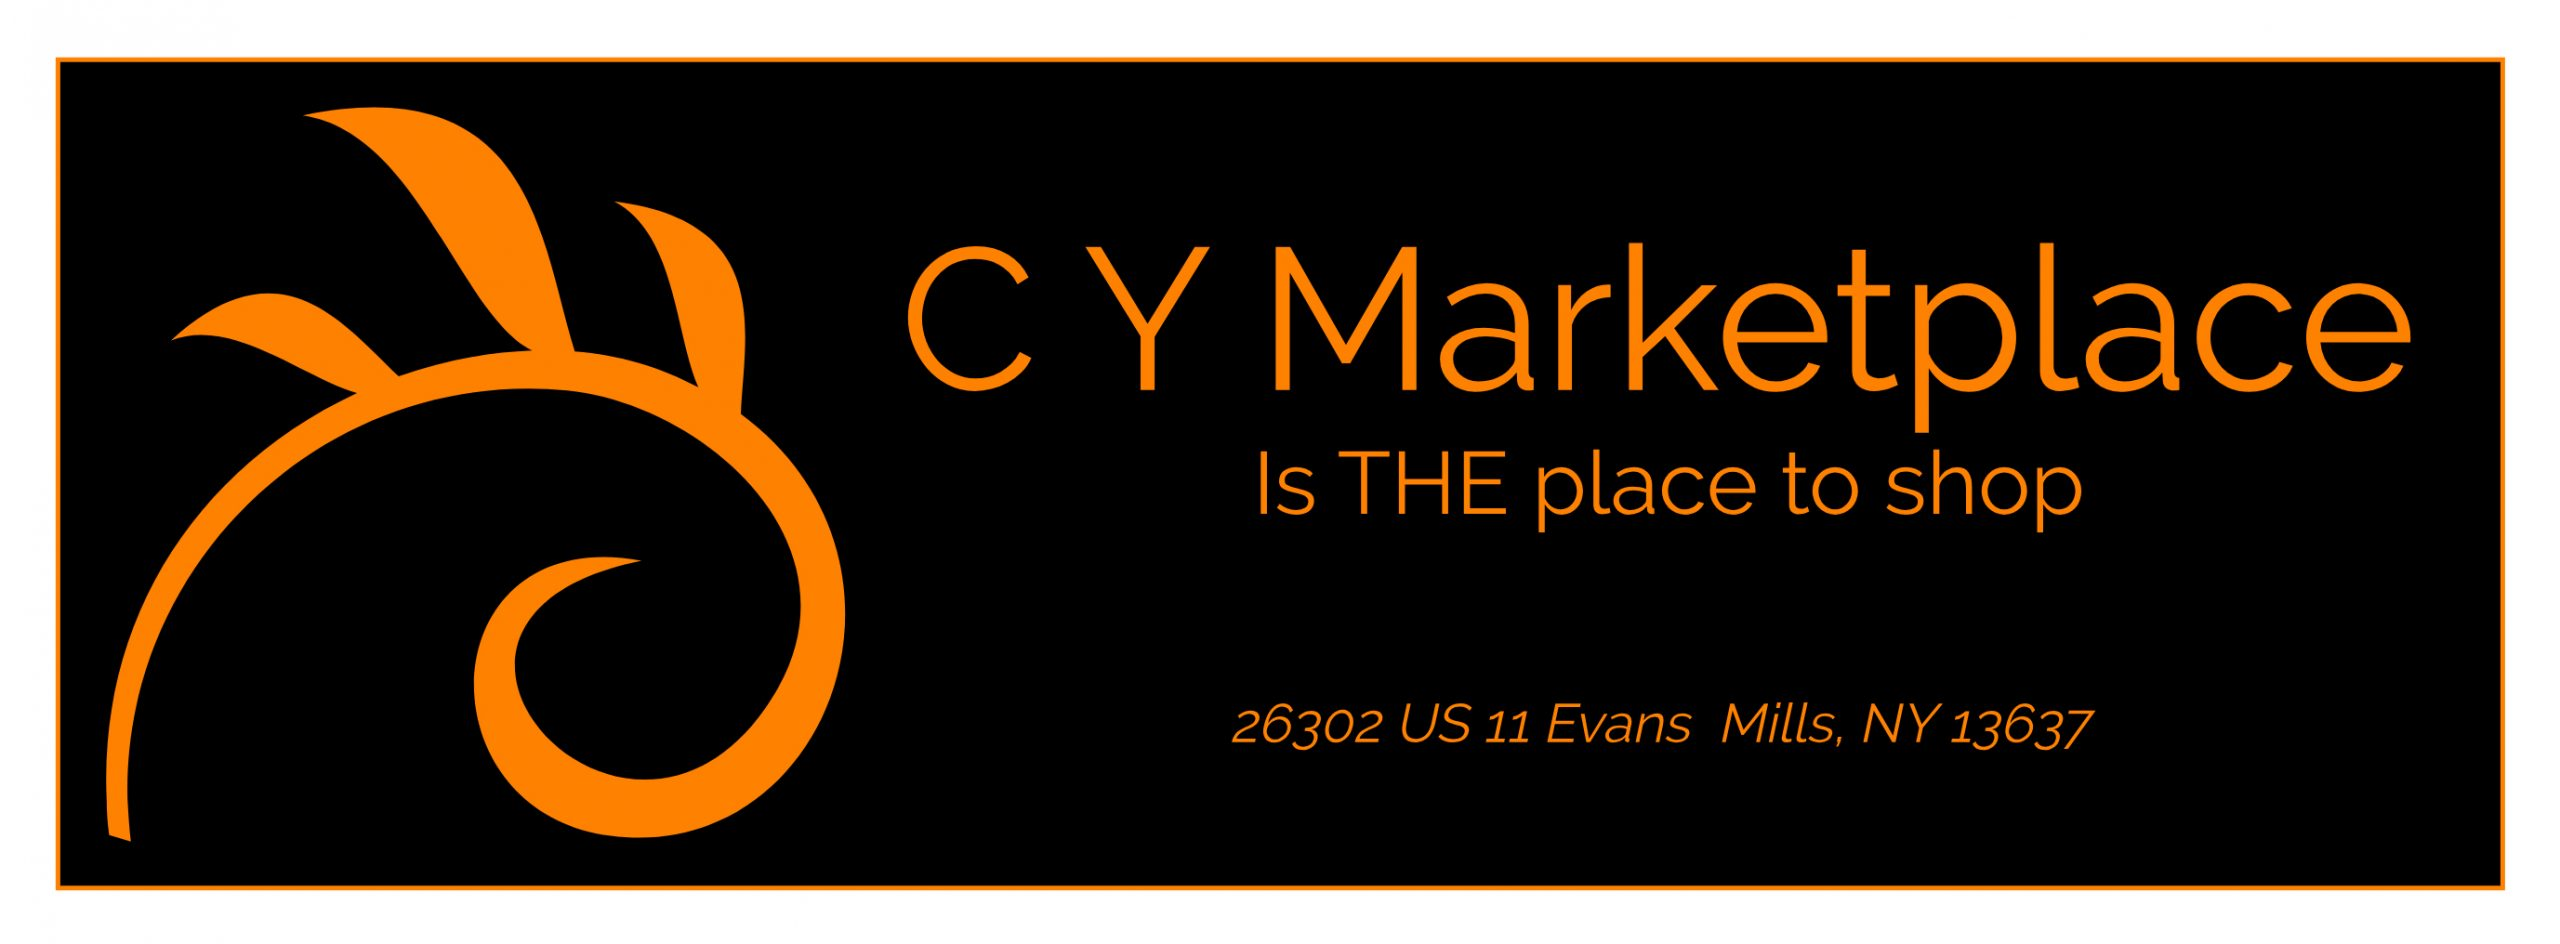 CY Marketplace